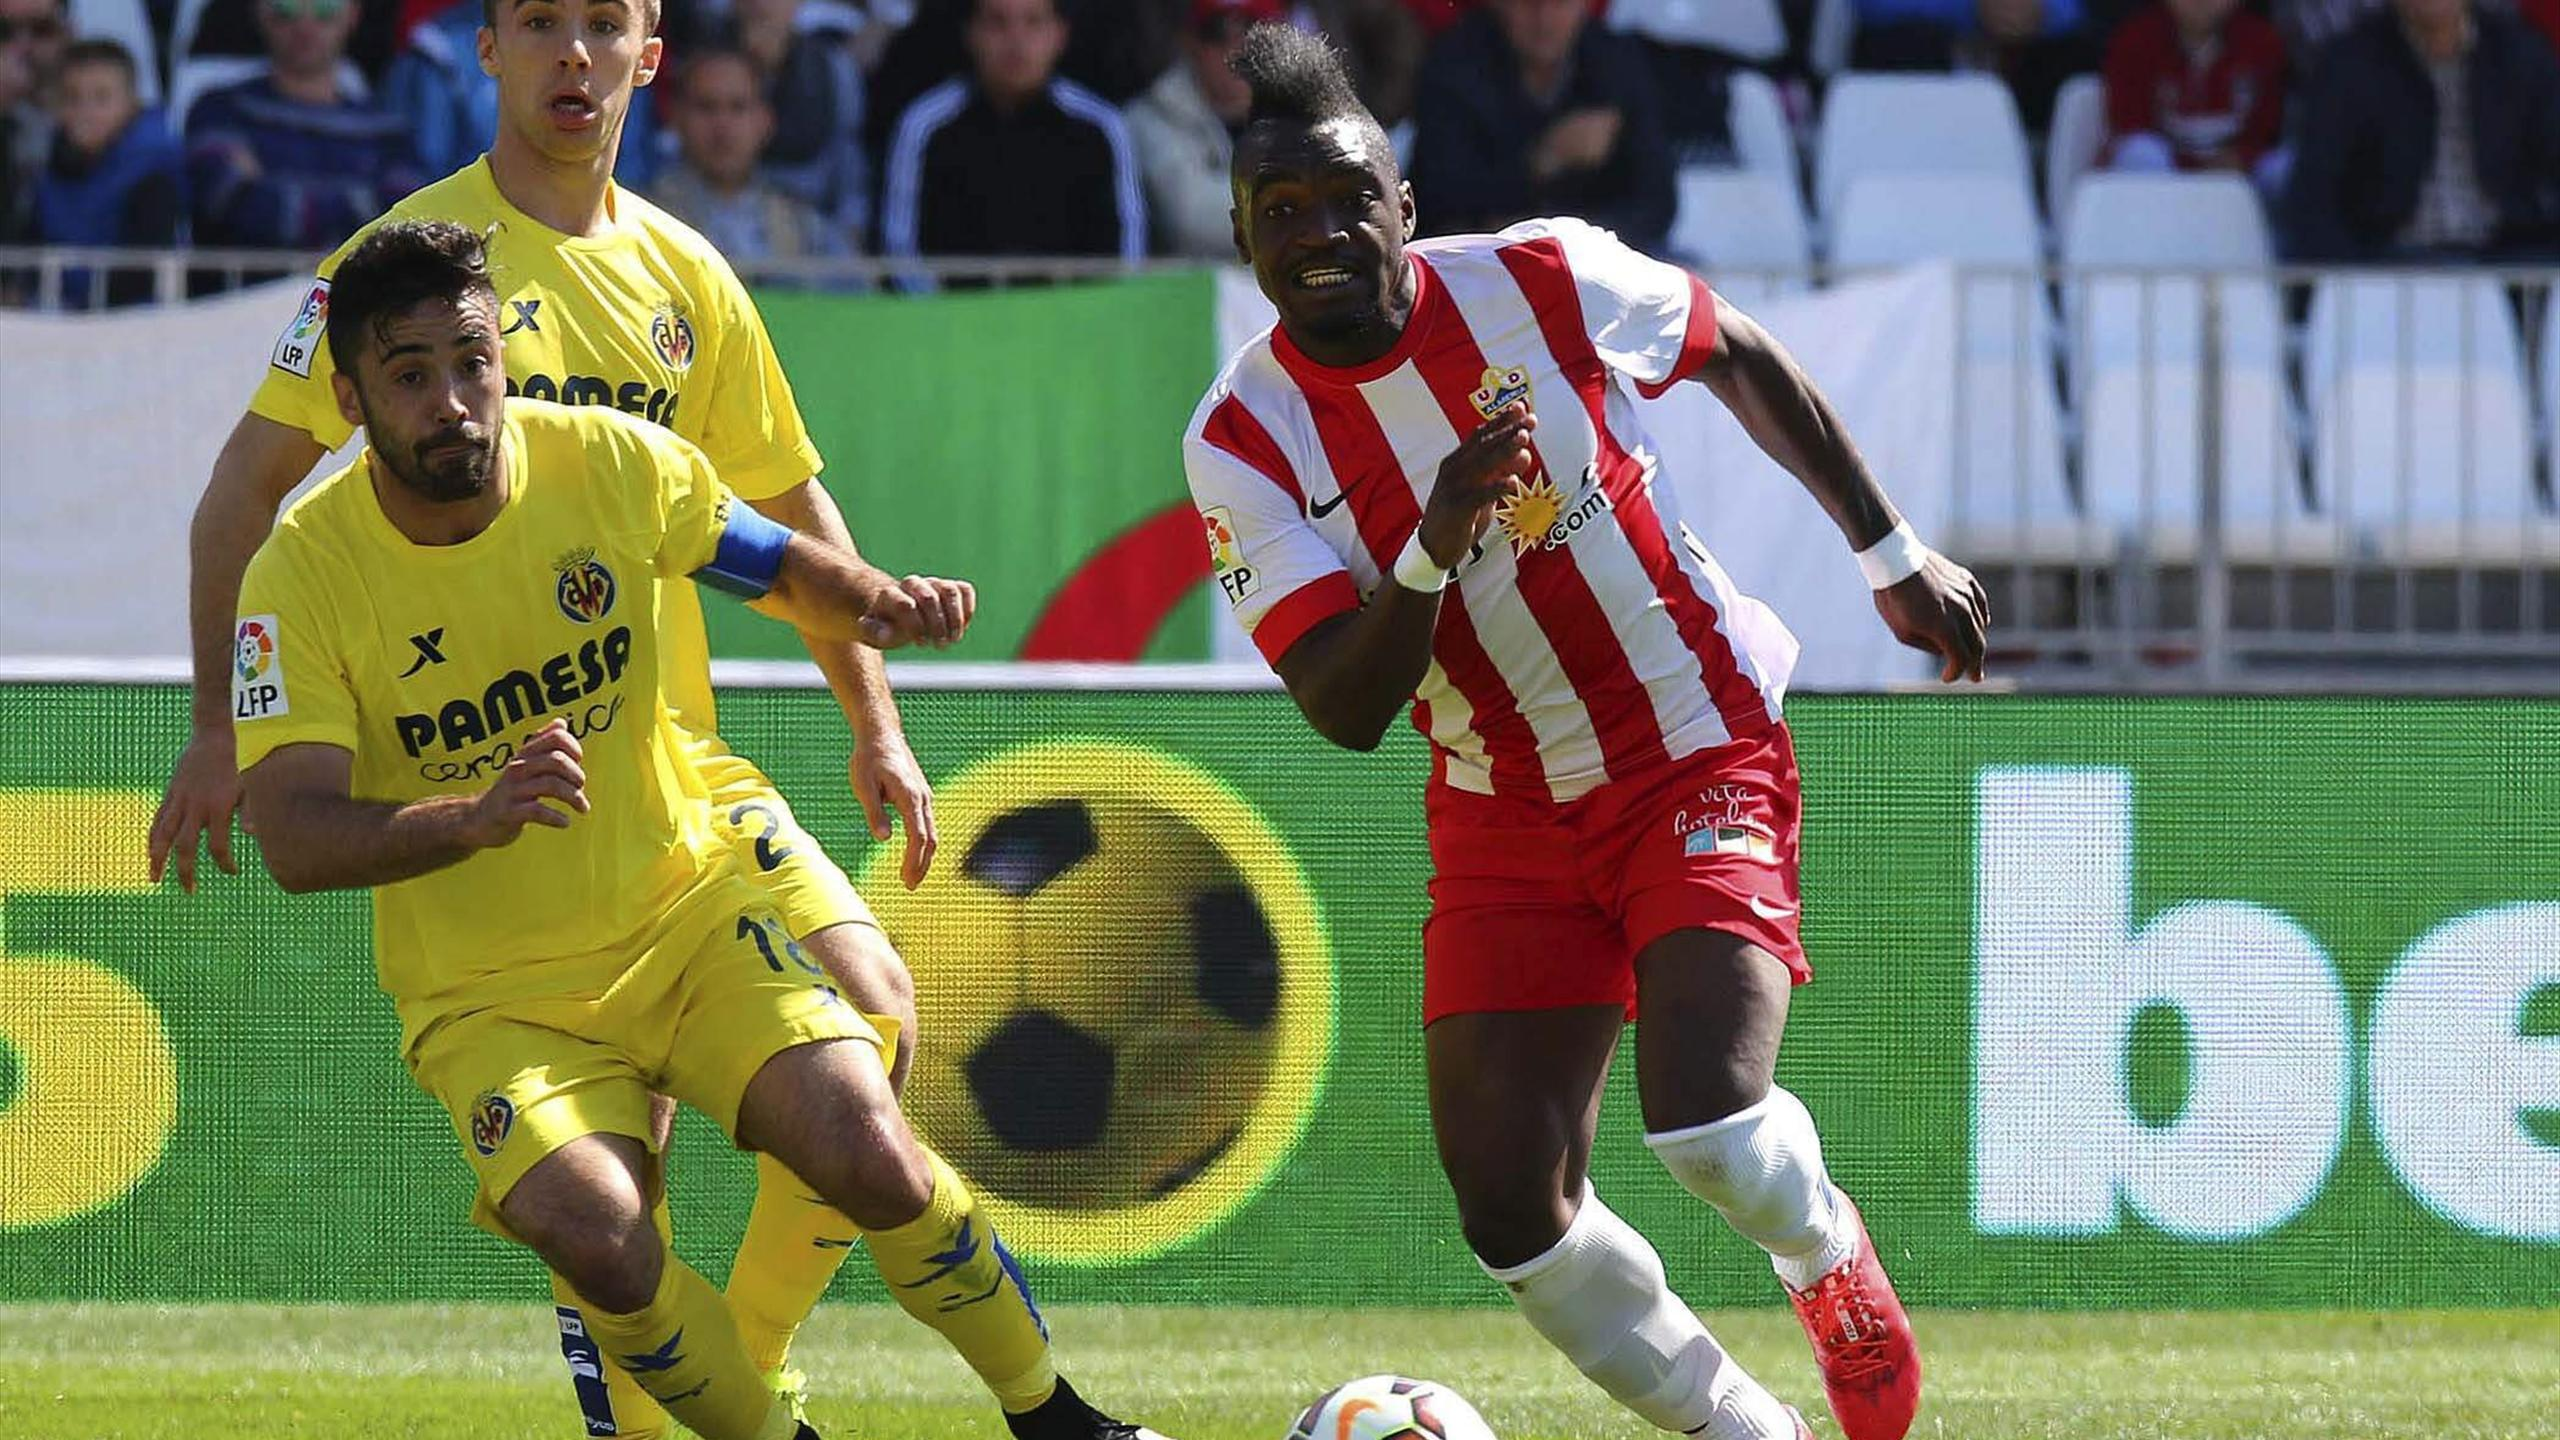 Video: Almeria vs Villarreal